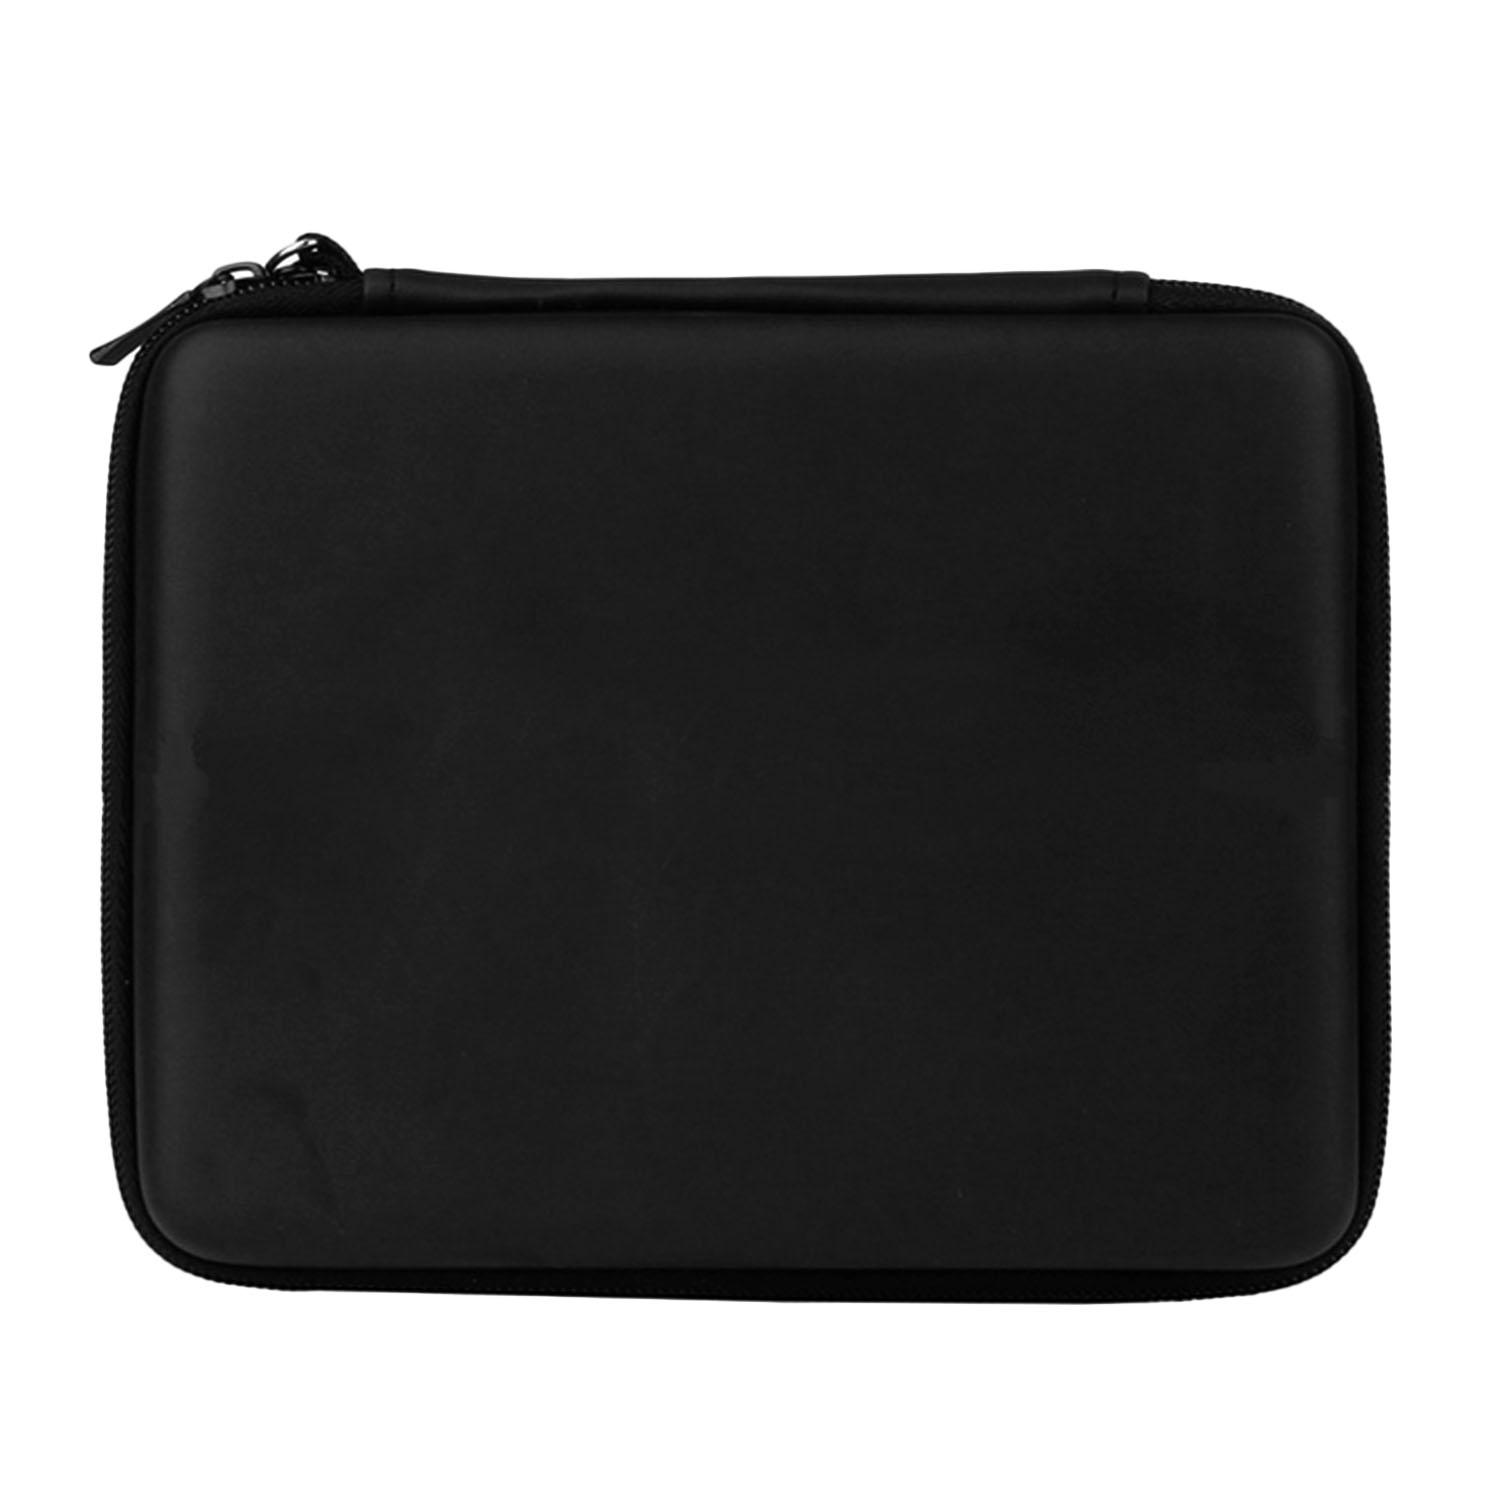 Portable Hard Shell Anti-shock Pelindung Penyimpanan Travel Hand Bag Case Holder dengan Carrying Strap untuk Nintendo 2DS Konsol Hitam-Intl